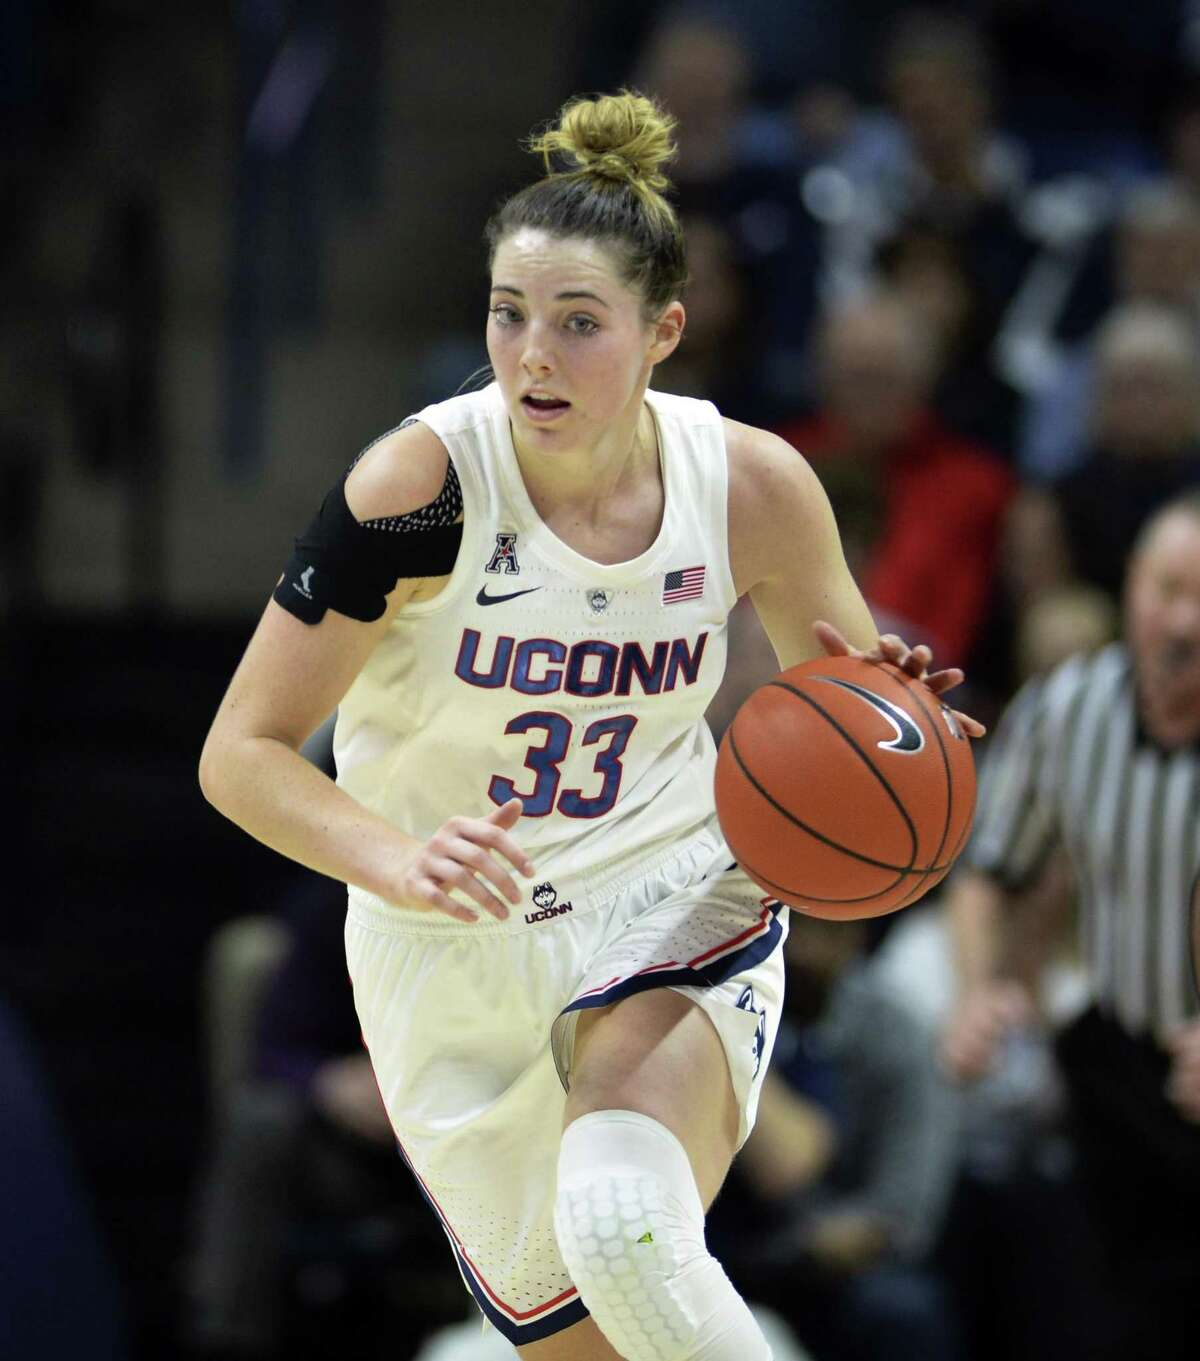 UConn's Katie Lou Samuelson drives down court against Ohio State on Nov. 11.